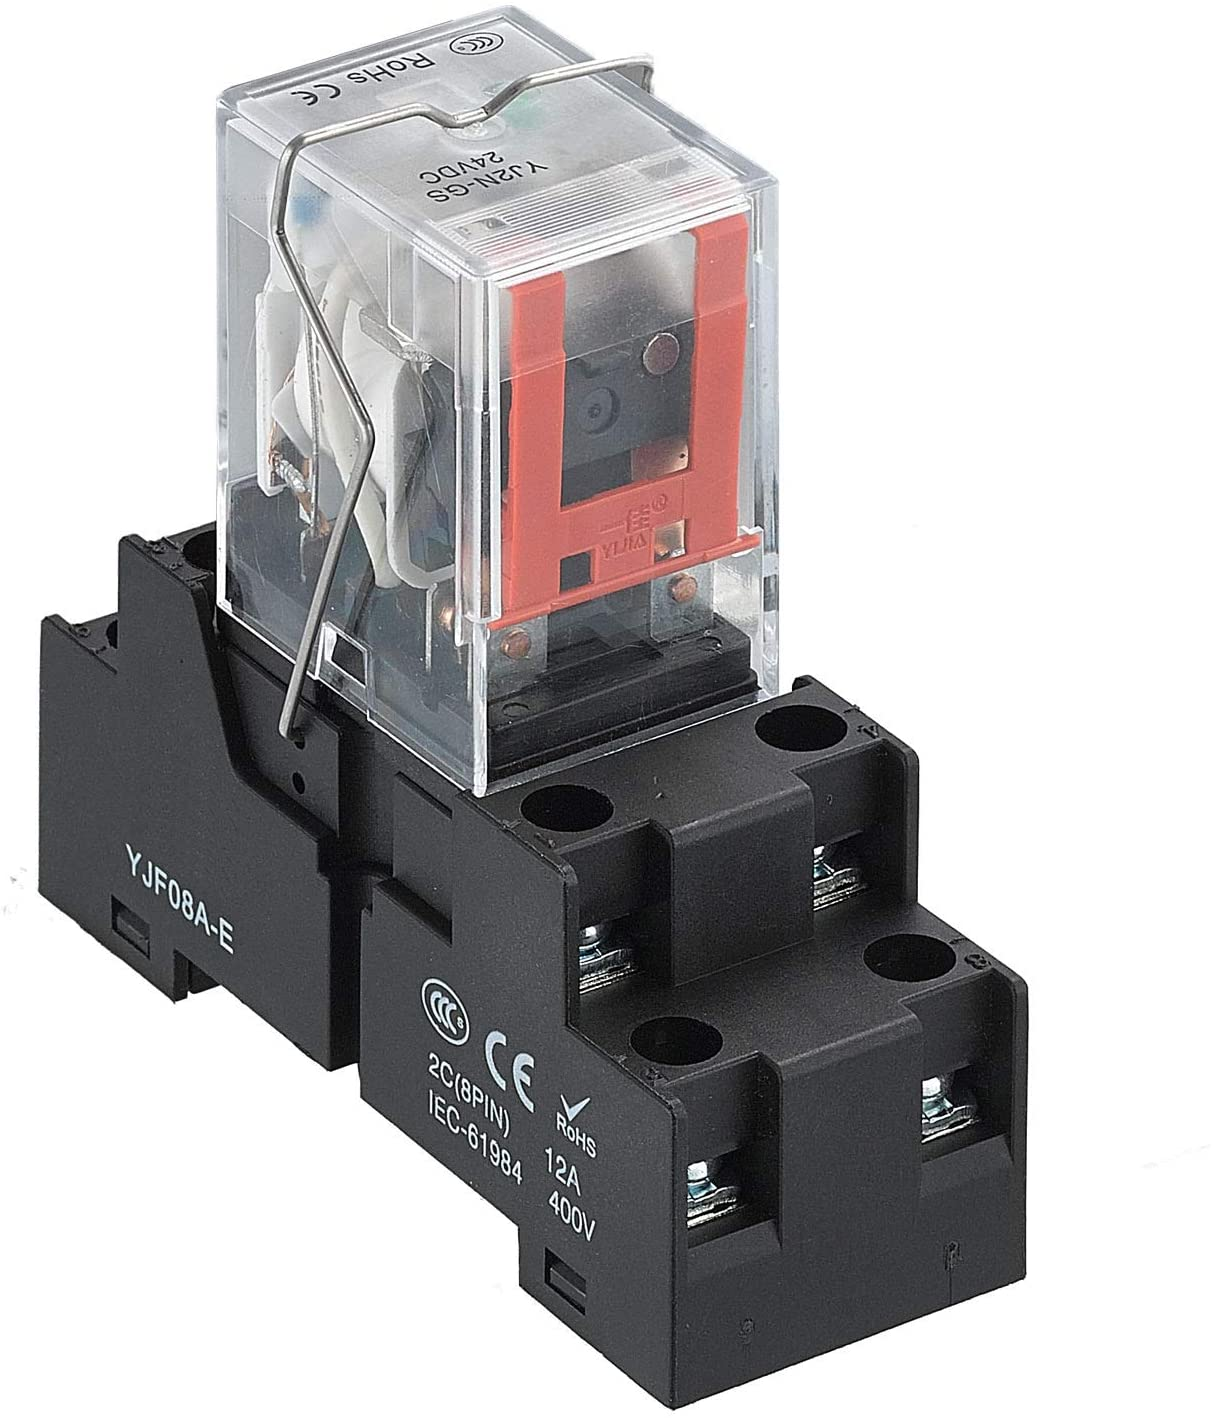 APIELE 12V DC Electromagnetic Power Relay MY2NJ HH52P Coil 2PDT 2NO+2NC 8 Pins 5A with Indicator Light With Base (12V DC)